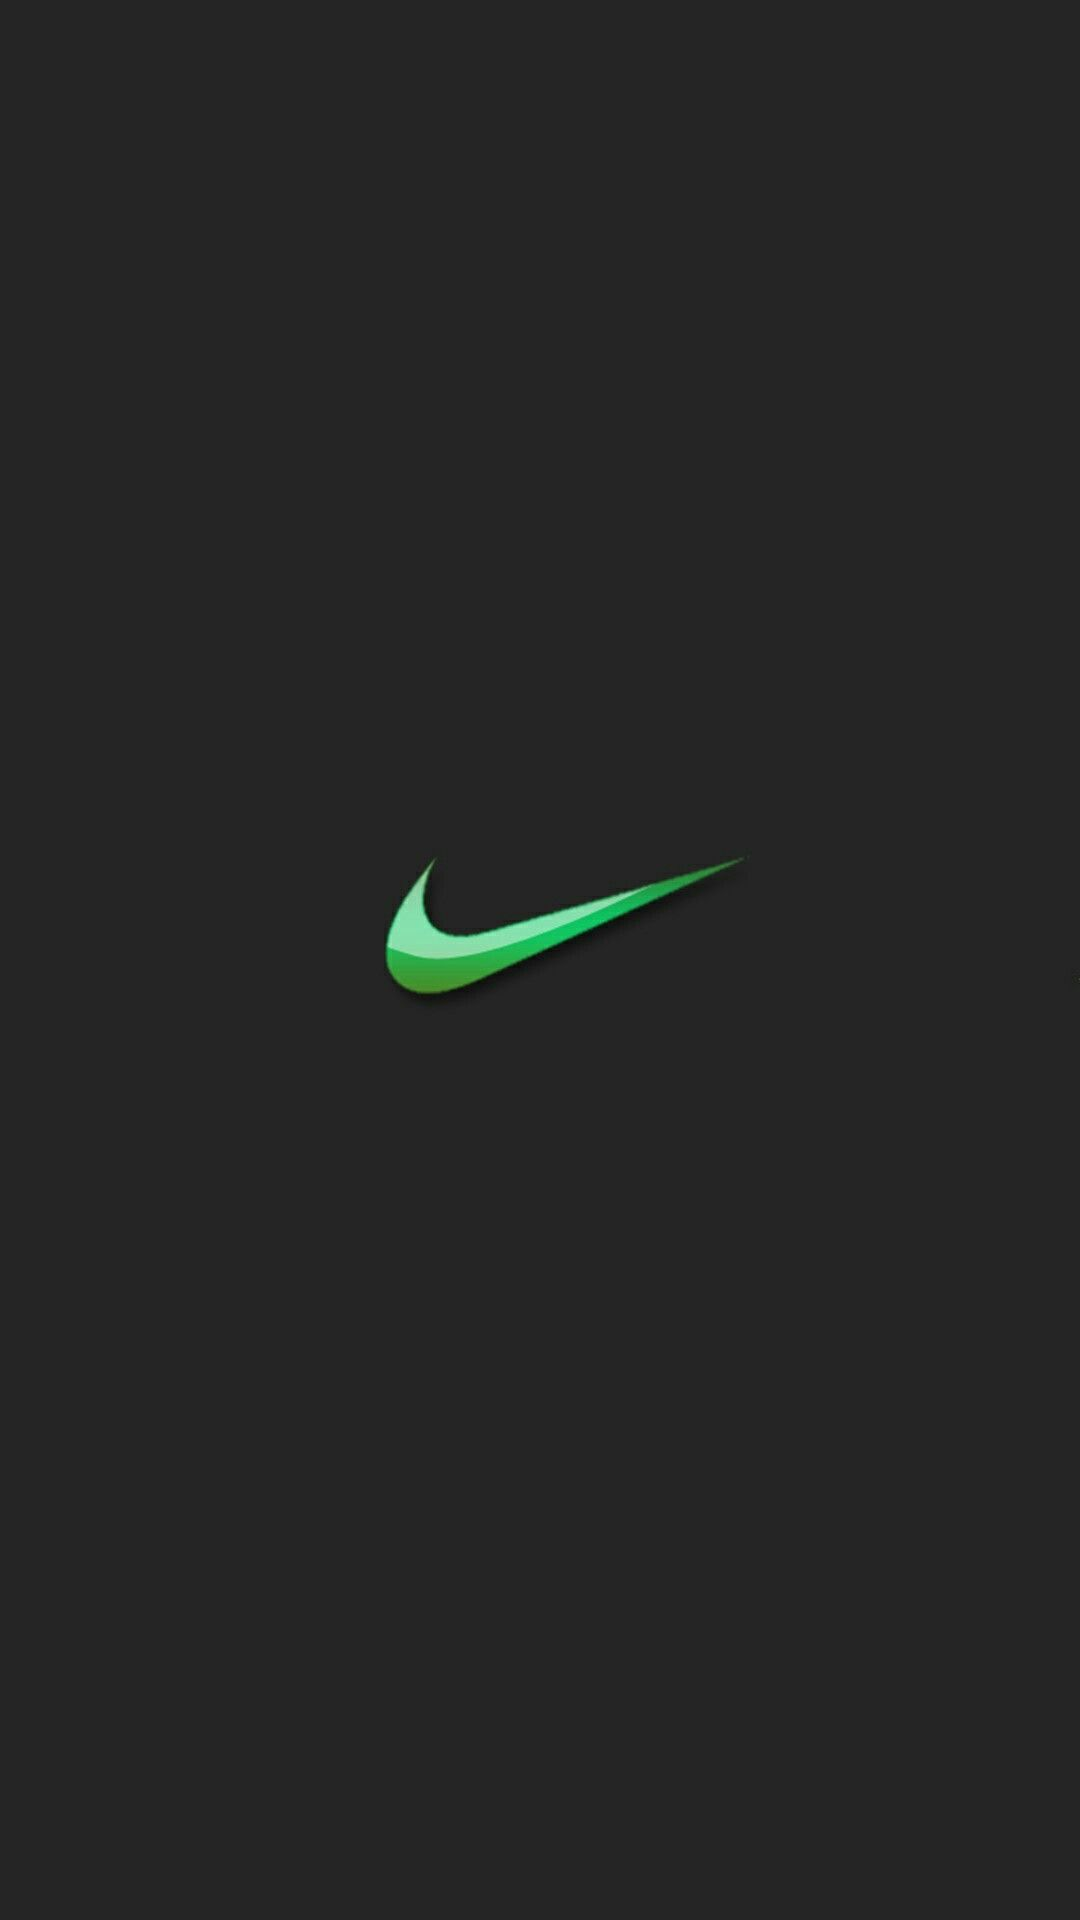 Green Nike Apple Watch Wallpaper